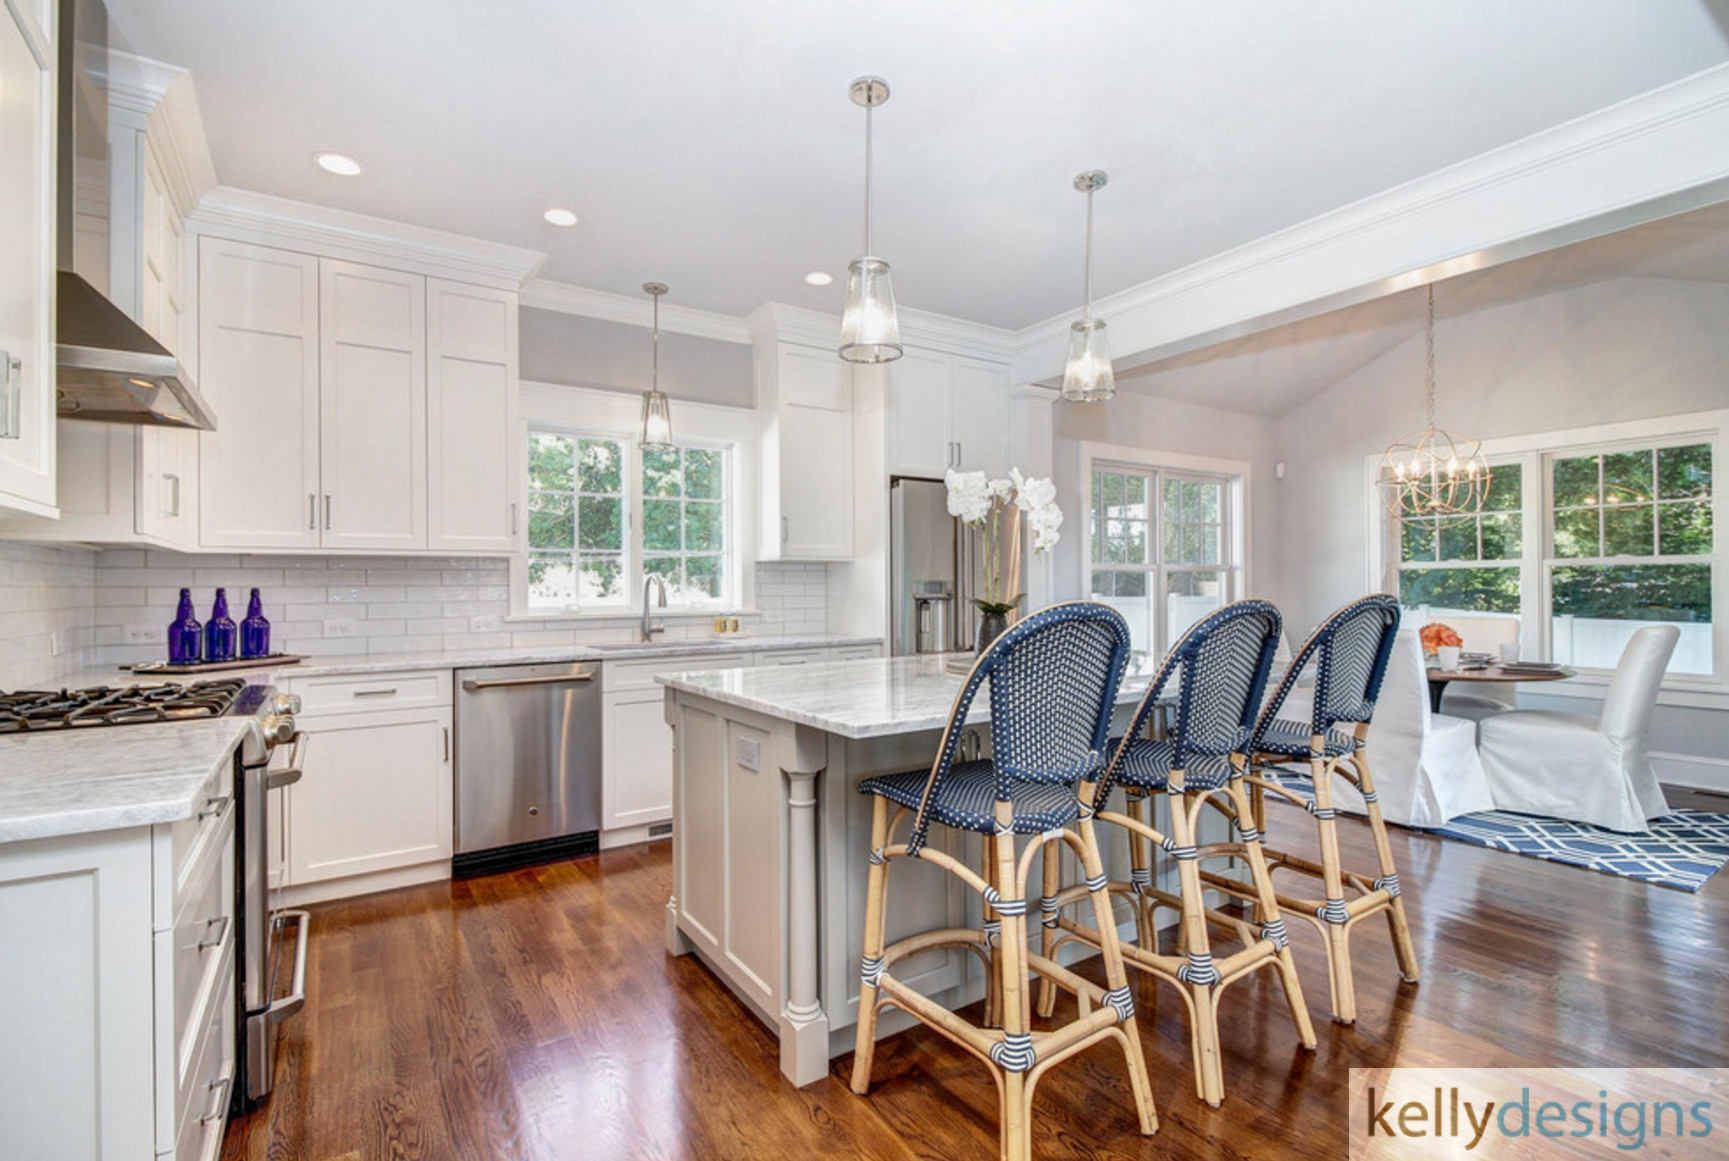 Winning On Wormwood Kitchen 4 Interior Design By Kellydesigns